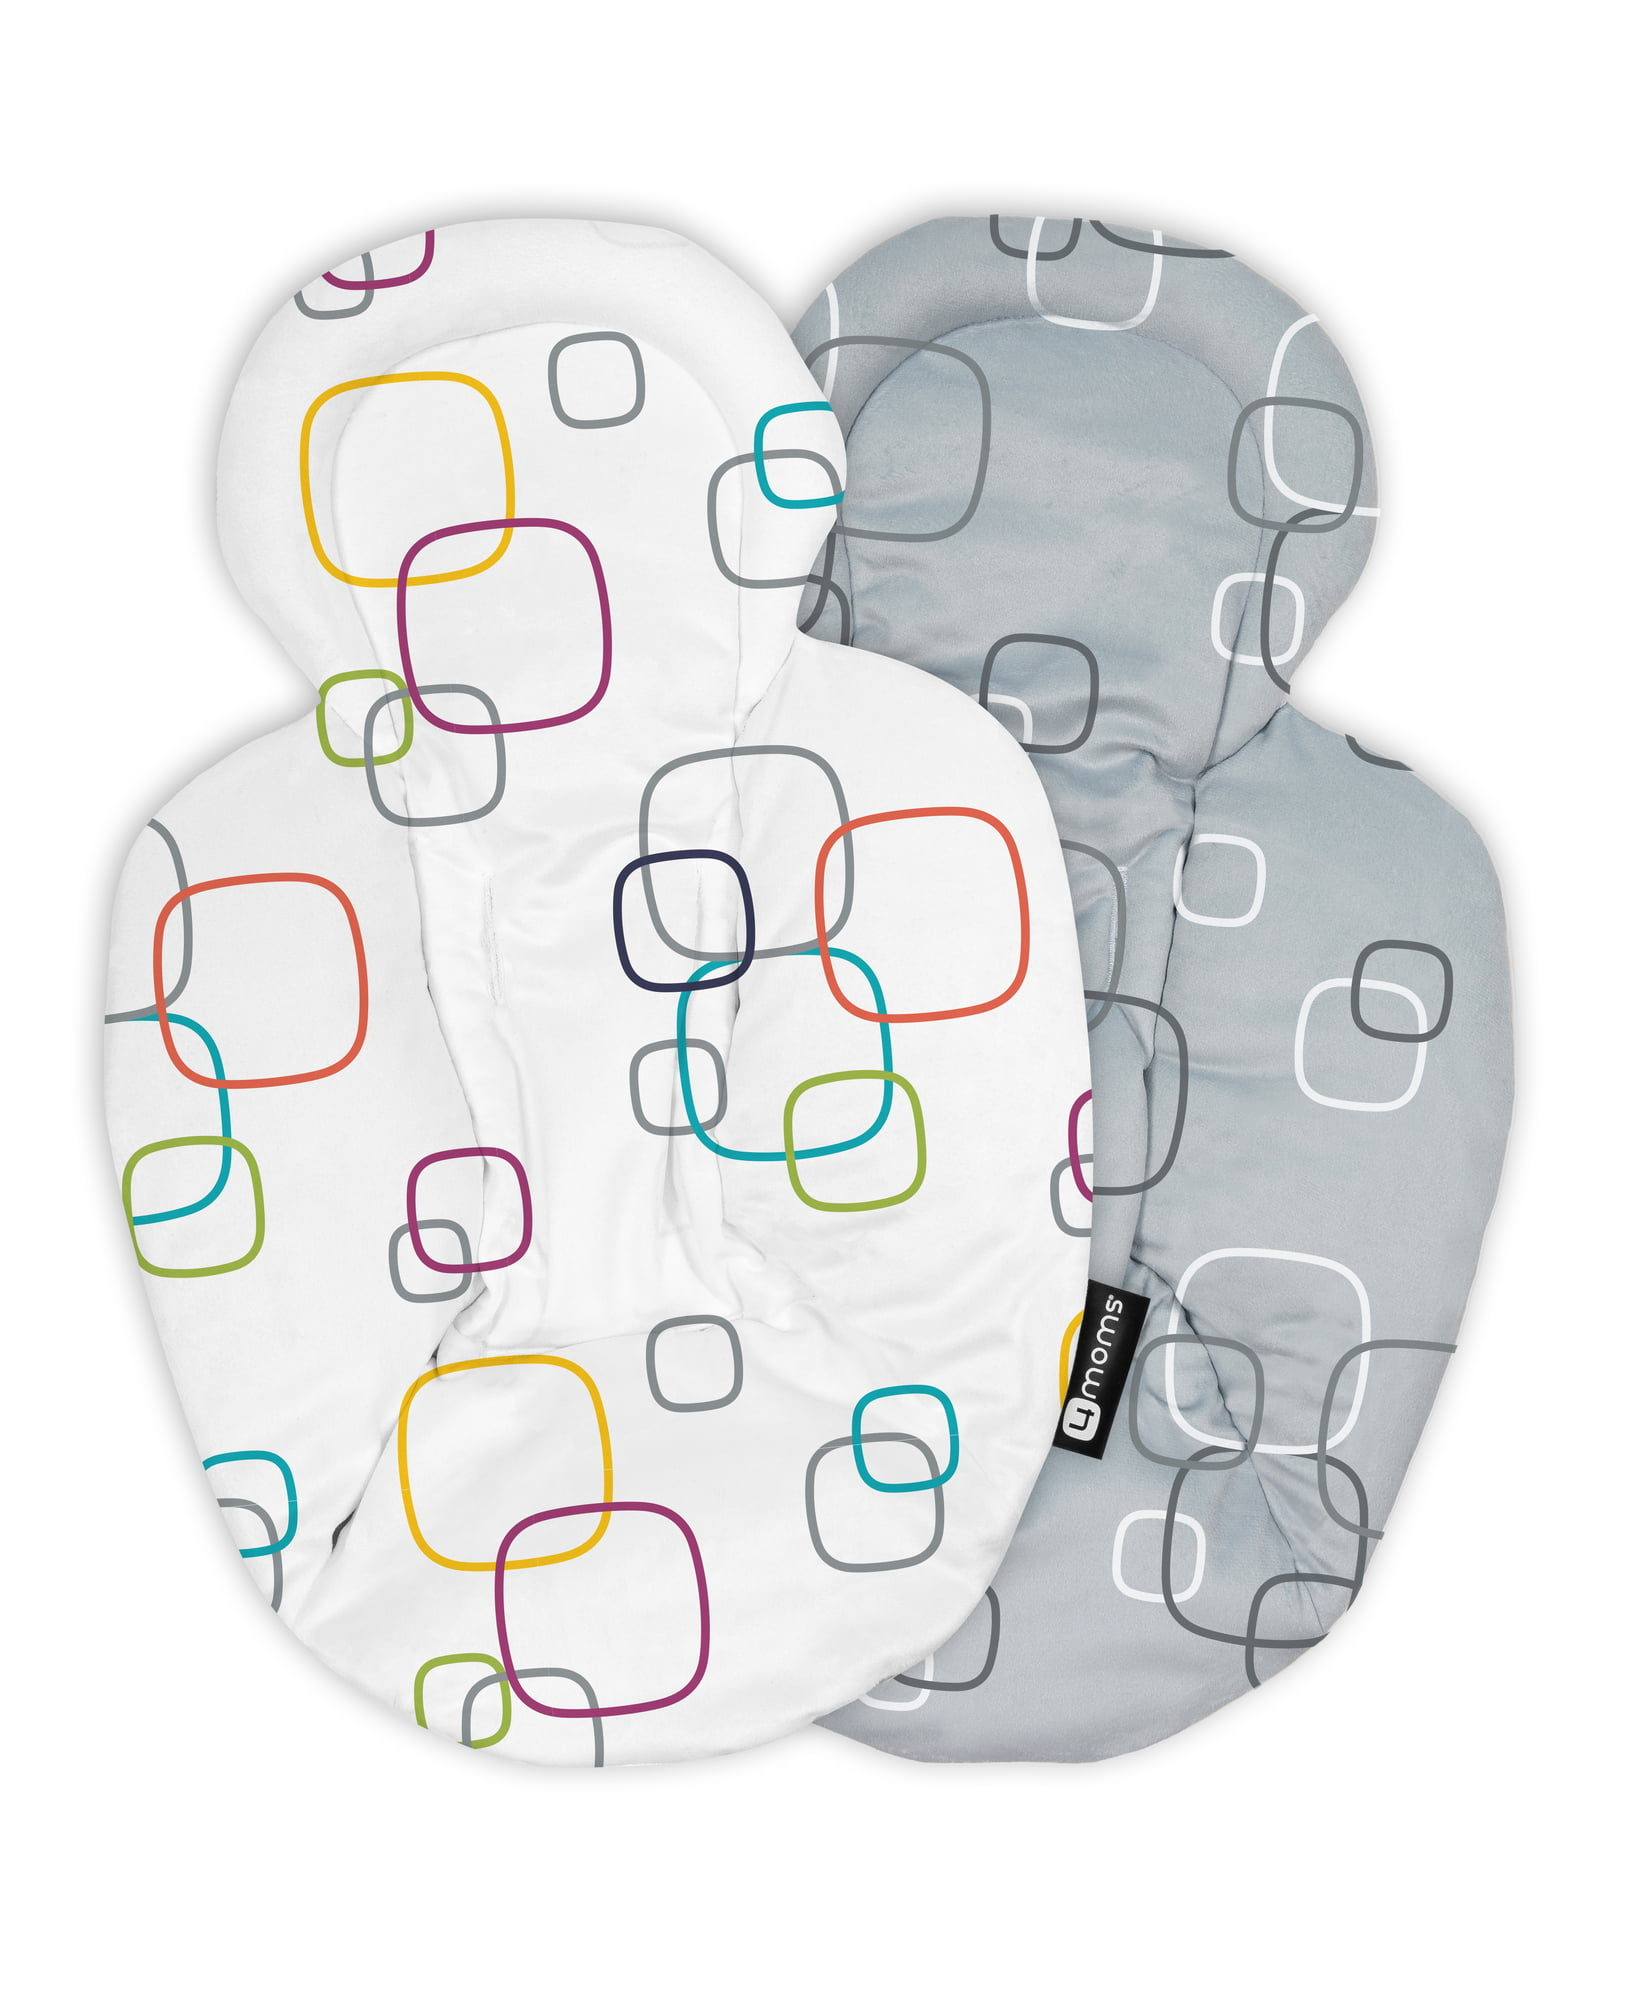 Infant Insert Compatible with 4Moms Mamaroo /& Rockaroo Rockaroo /& Mamaroo Newborn Insert Car Seat Insert 2 Pack Soft Plush Minky Car Seat Head Support Insert Reversible Infant Car Seat Insert